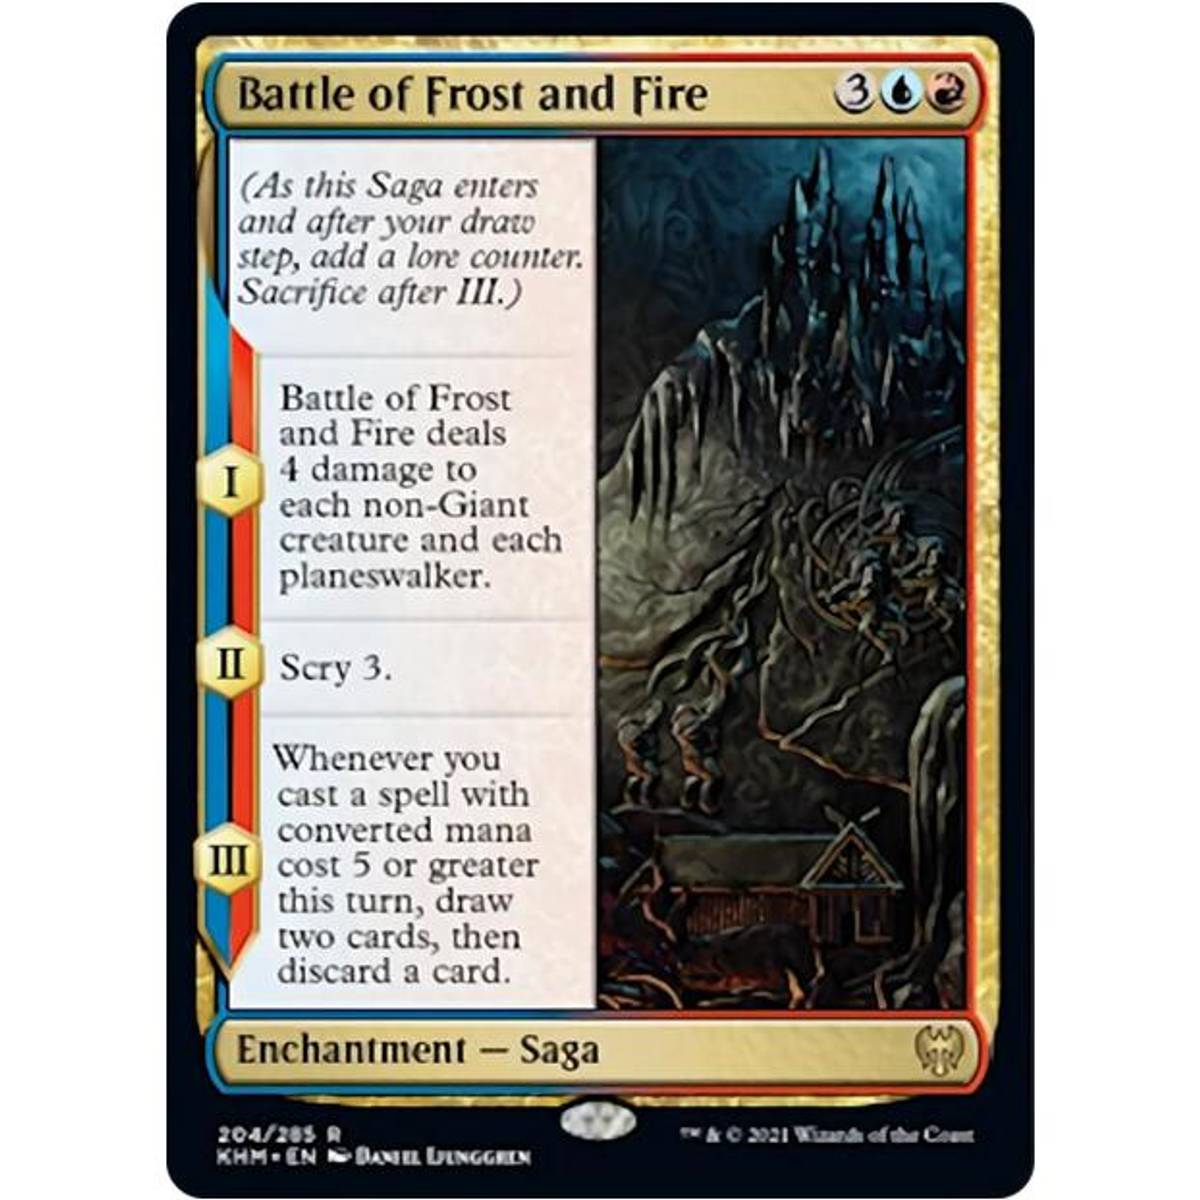 Battle of Frost and Fire